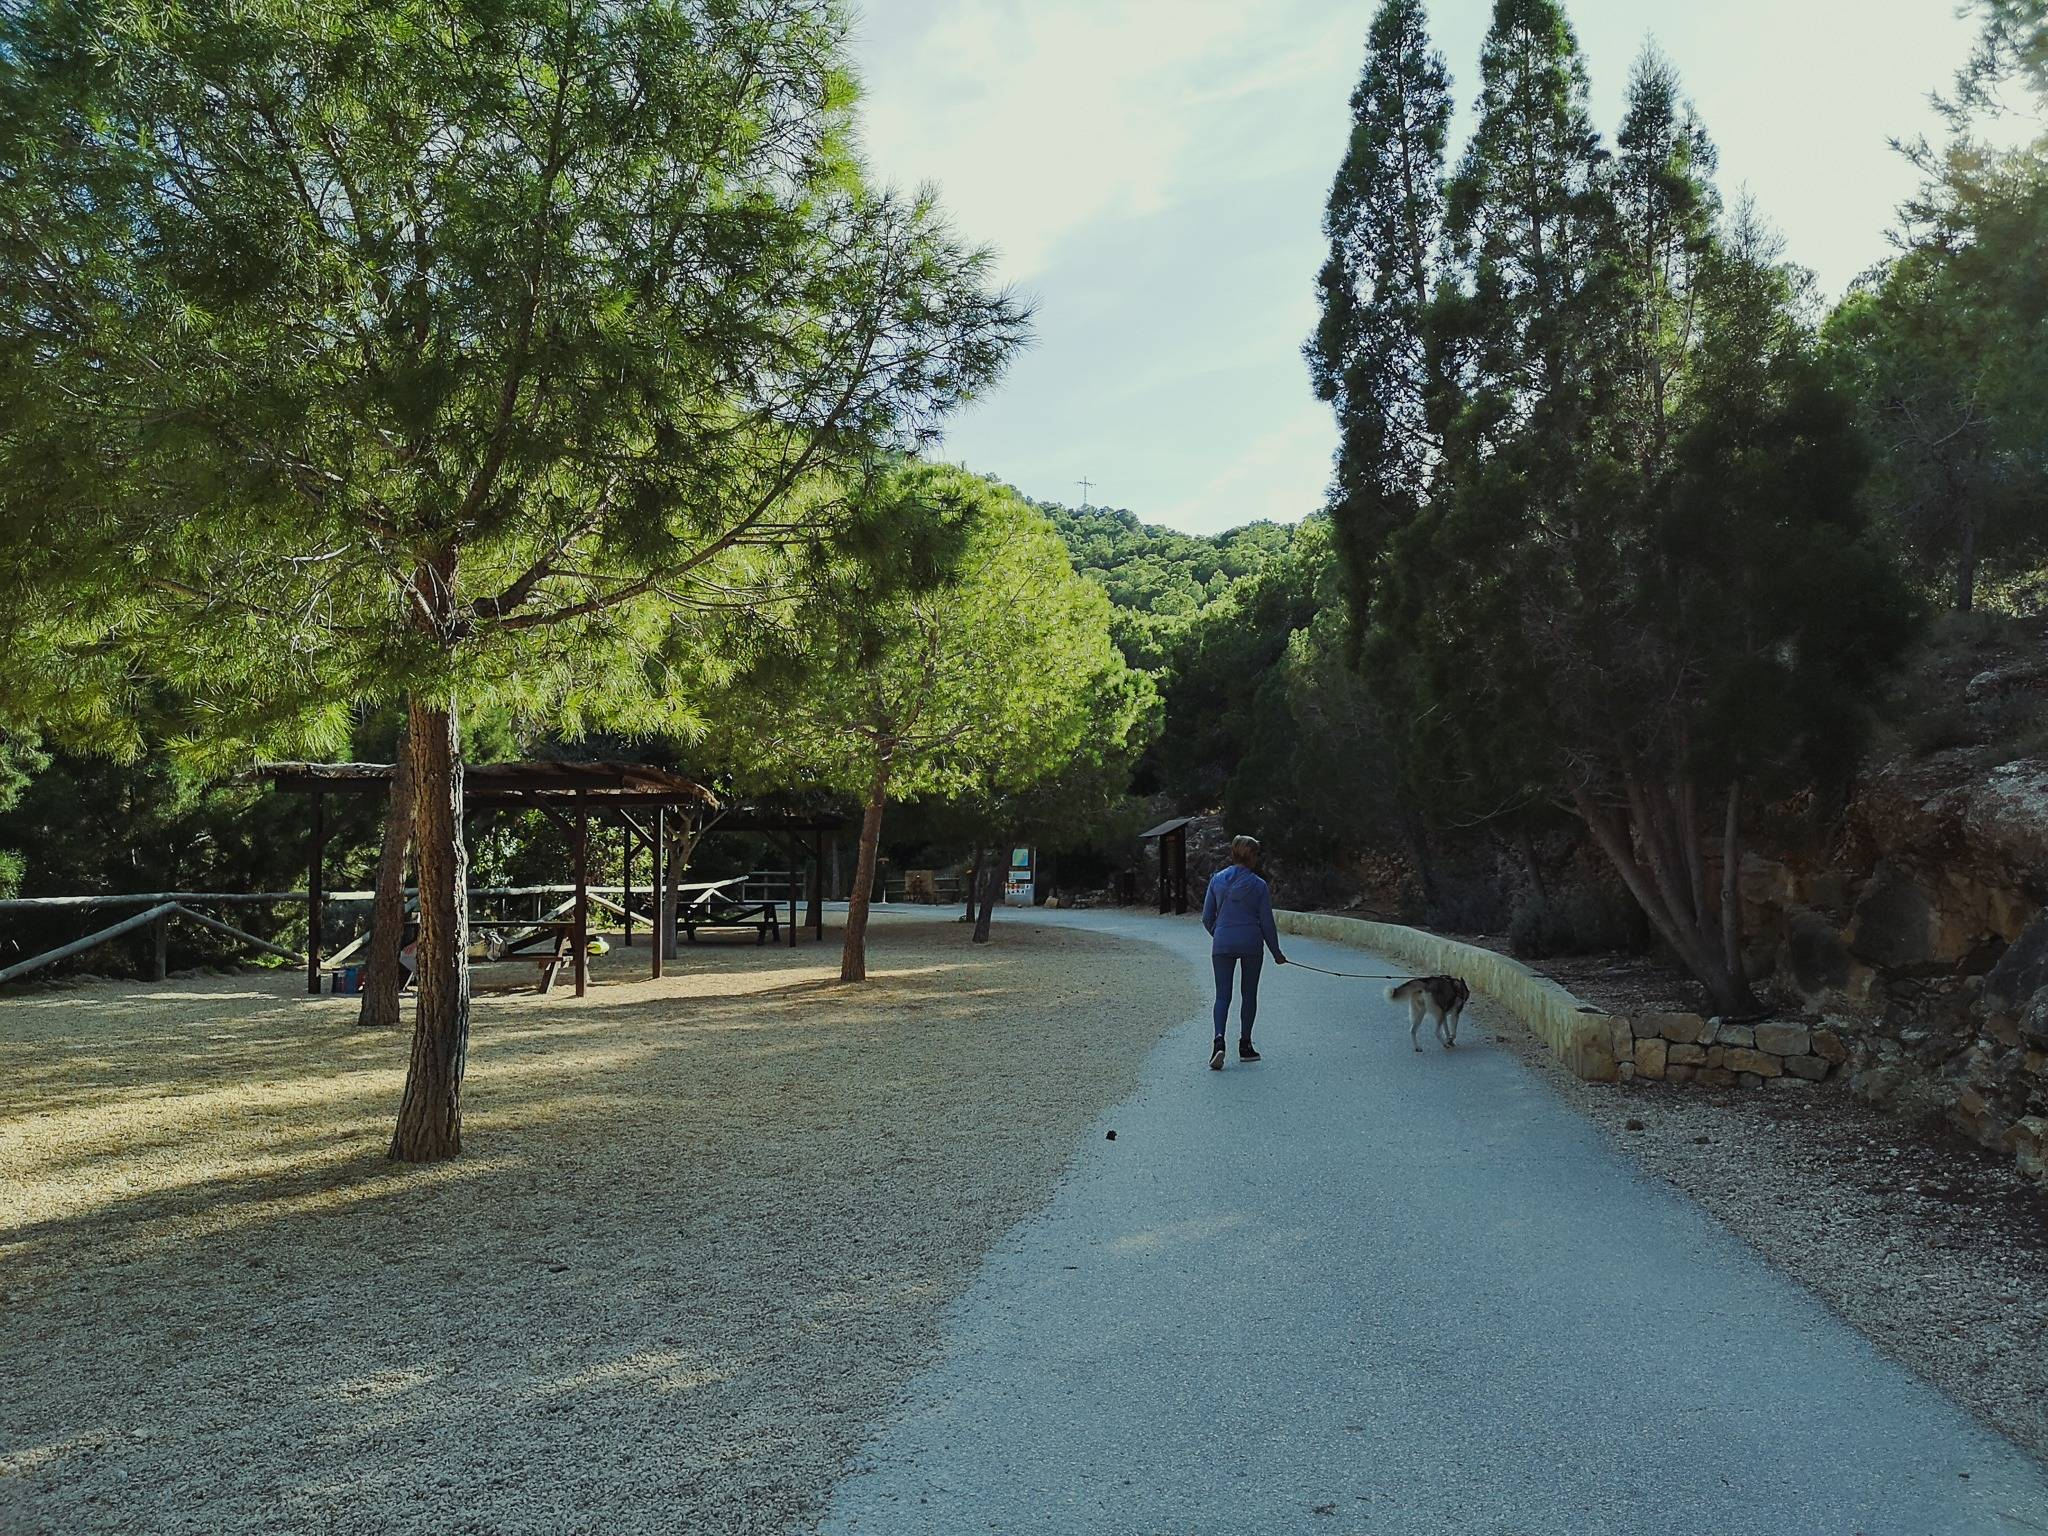 Camino del Faro leads to the left toward a picnic area with another access to water. Photo by Alis Monte [CC BY-SA 4.0], via Connecting the Dots